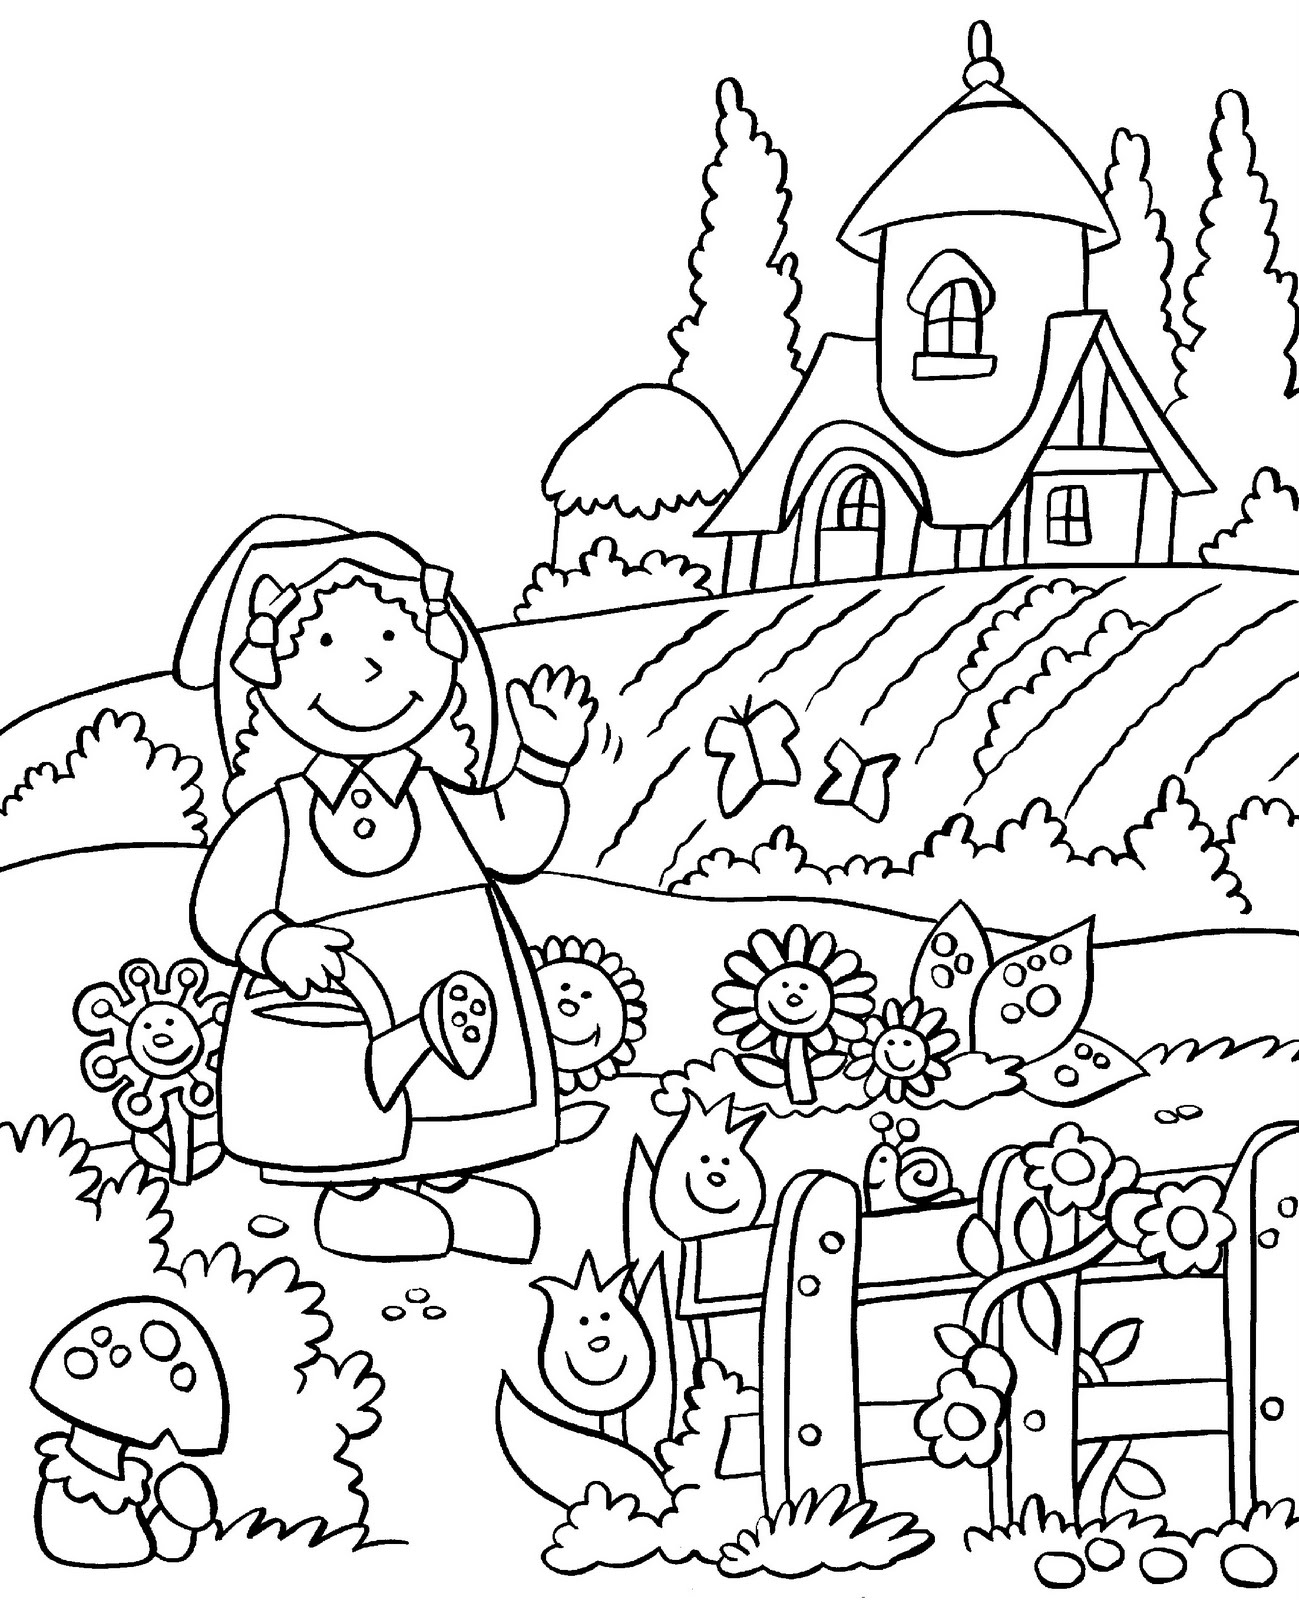 coloring pages house with garden garden color therapy app is fun and relaxing try this garden pages coloring with house